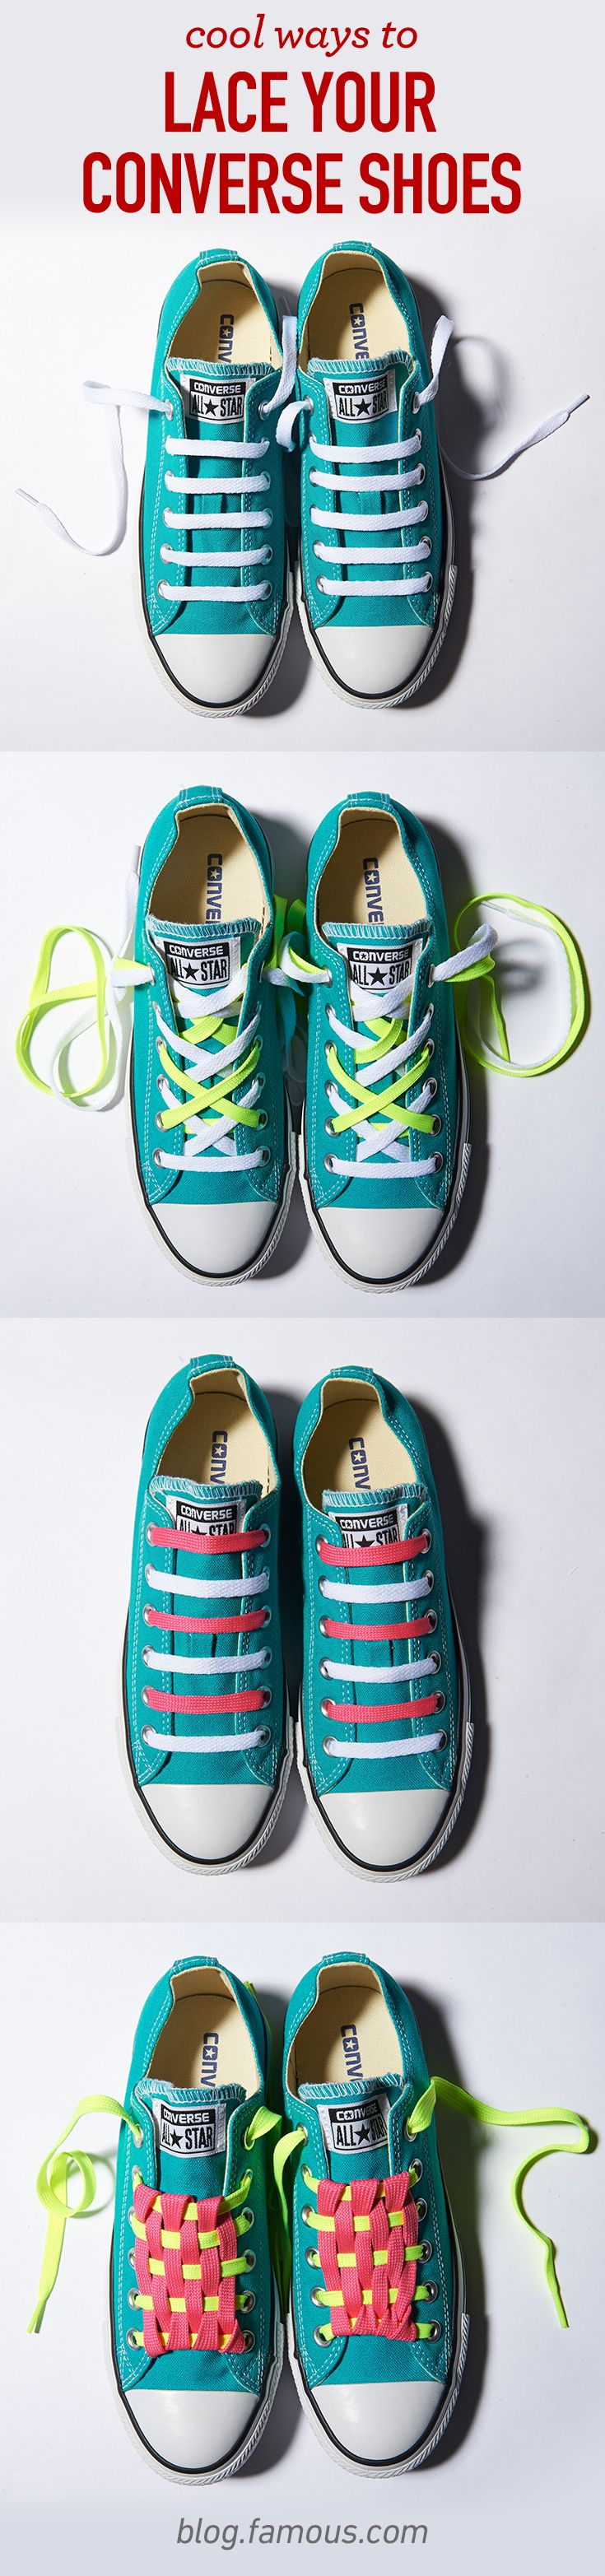 cool things to do with converse